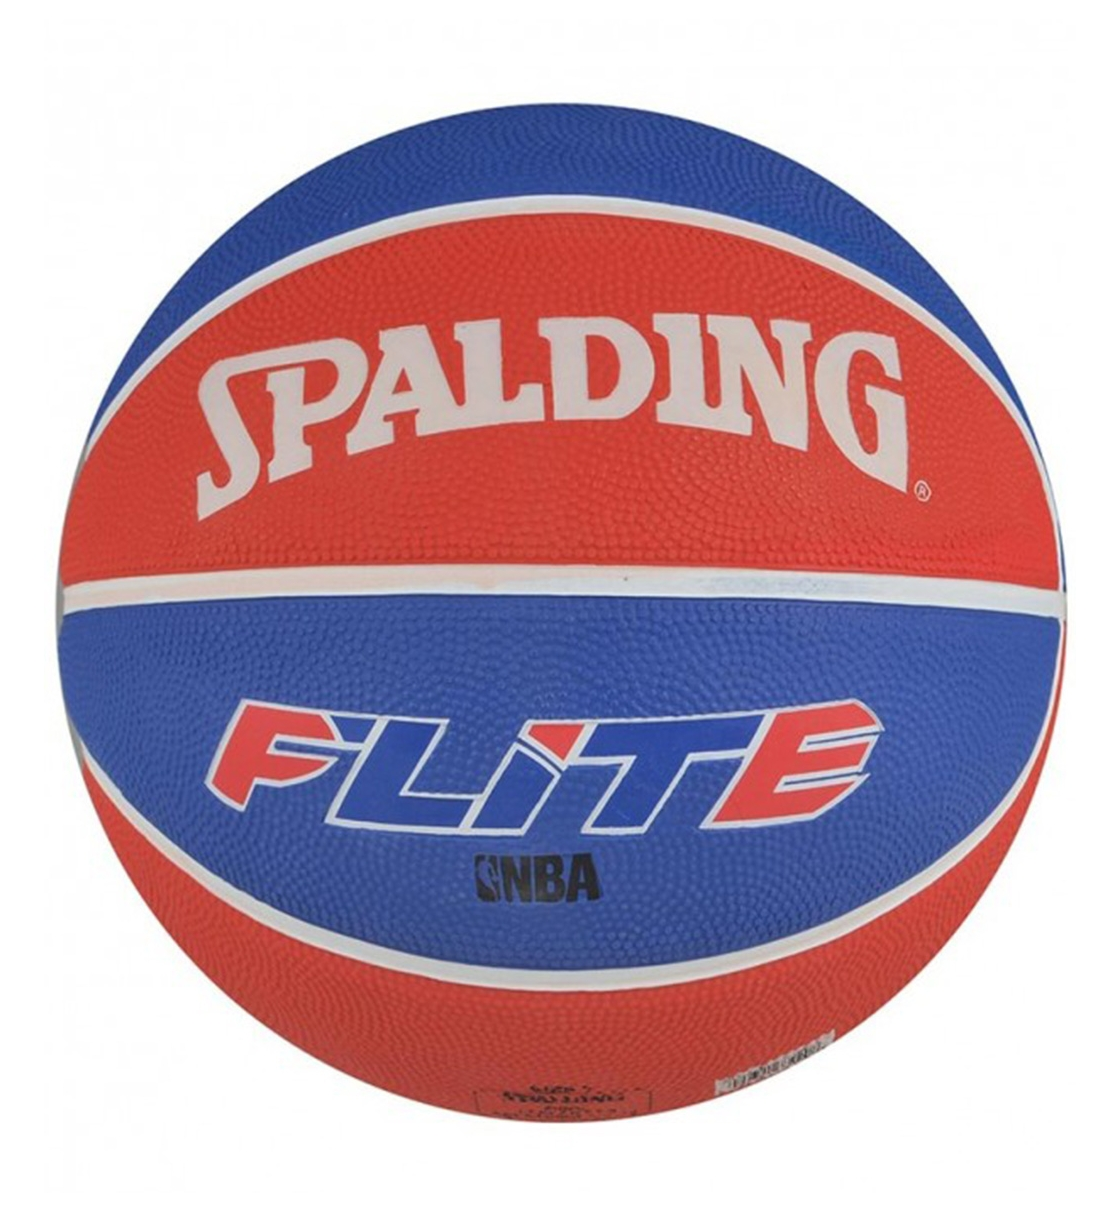 Spalding Μπάλα Basket Flite Color Size 7 Rubber Basketball 73920Z1